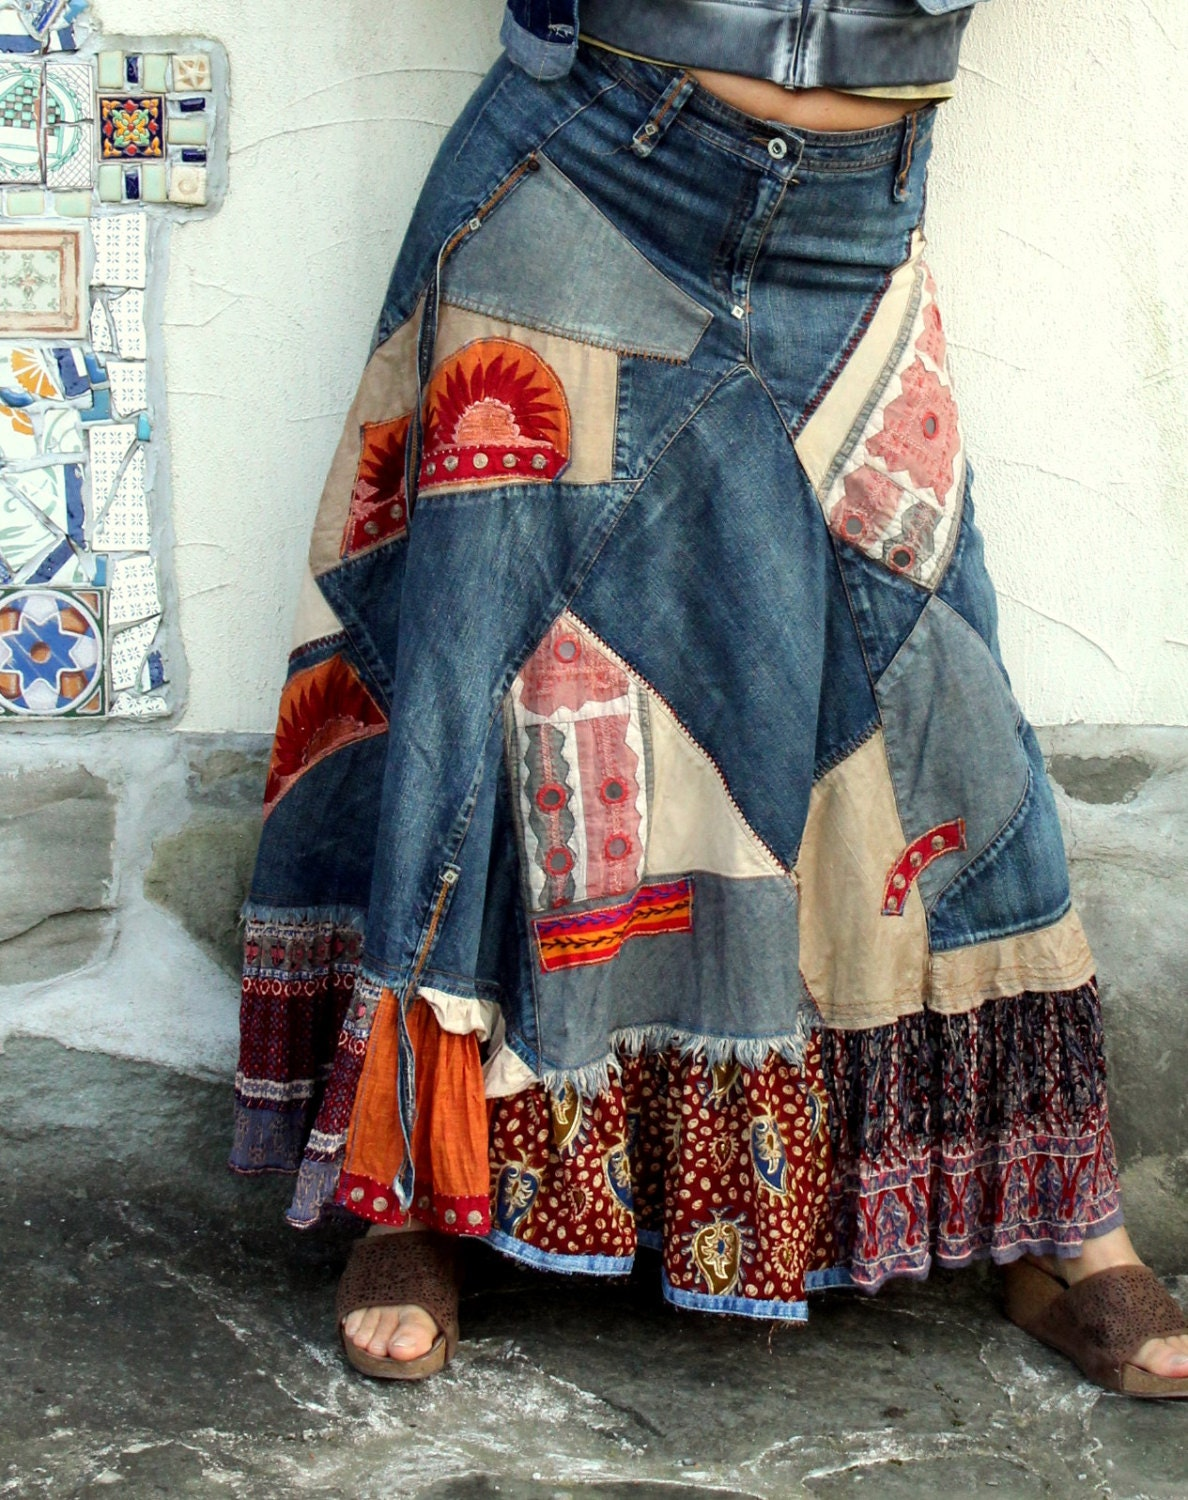 Crazy Banjara Patchwork Recycled Denim Long Skirt Hippie Boho